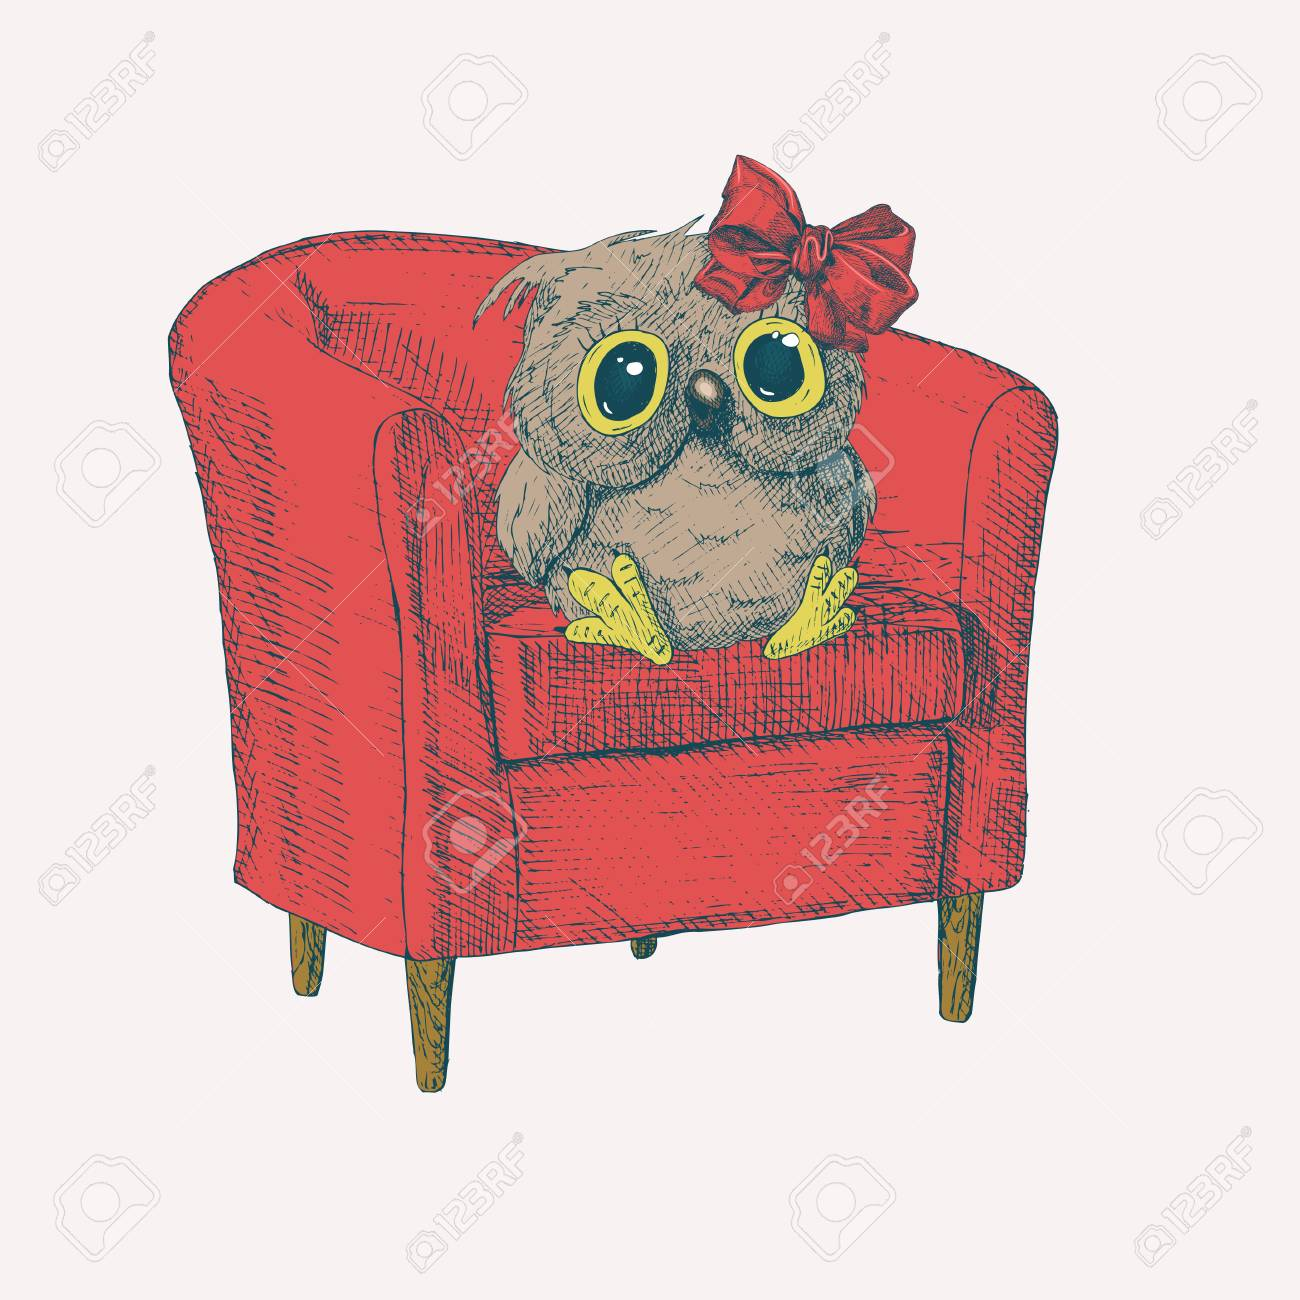 Owl Chair Cute Owl With A Bow Sitting On Easychair Cute Owl With A Bow